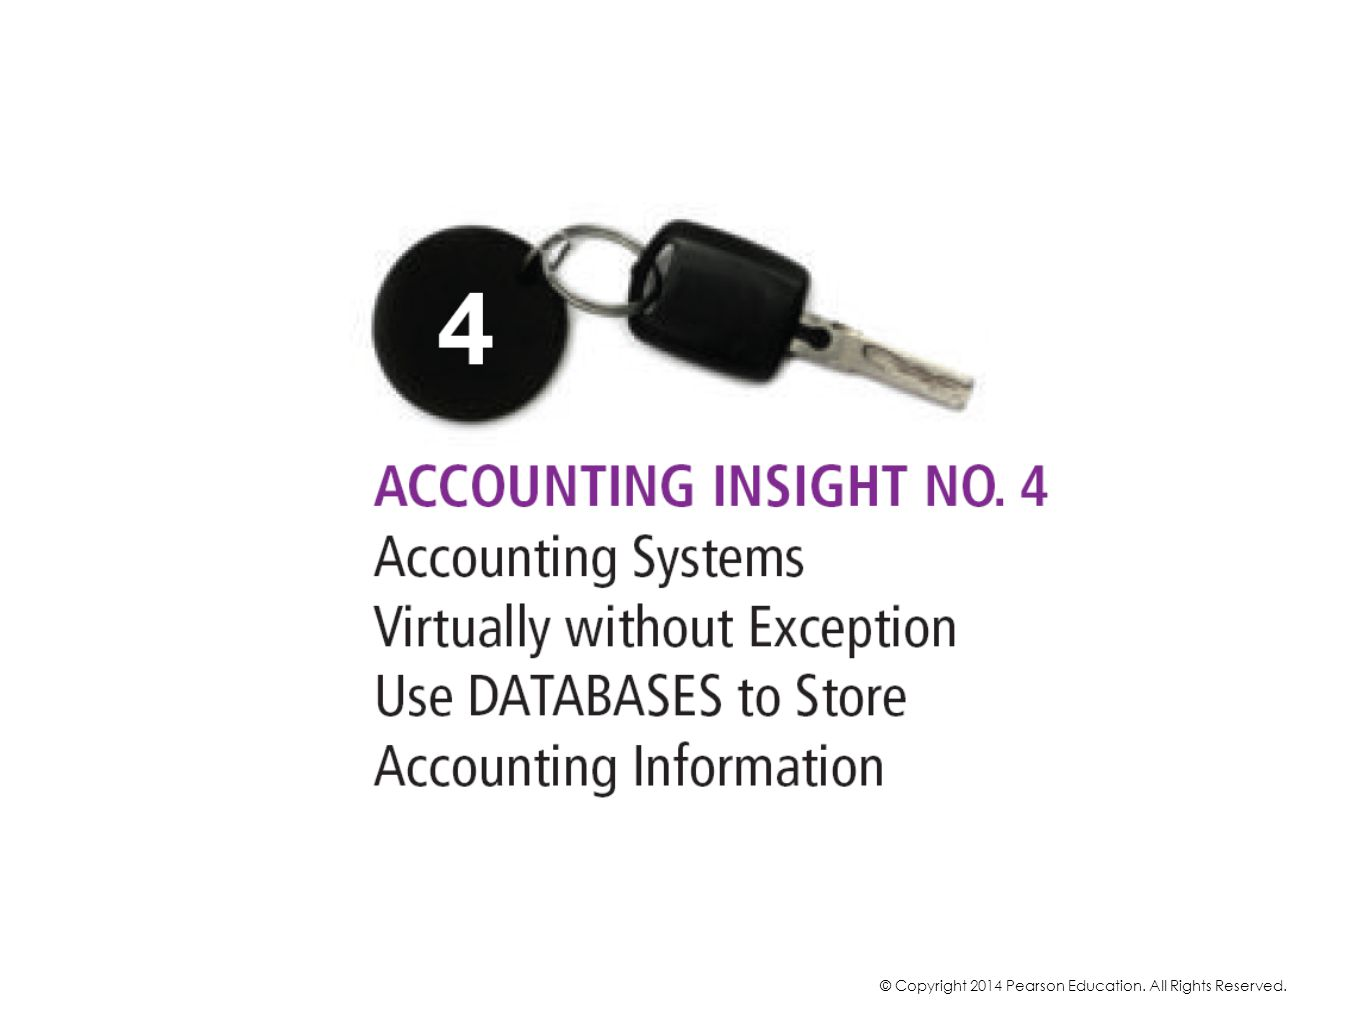 When we enter information into an accounting system, almost all accounting systems use databases to store the information. We may never see the database onscreen or have any indication the accounting system is using a database.